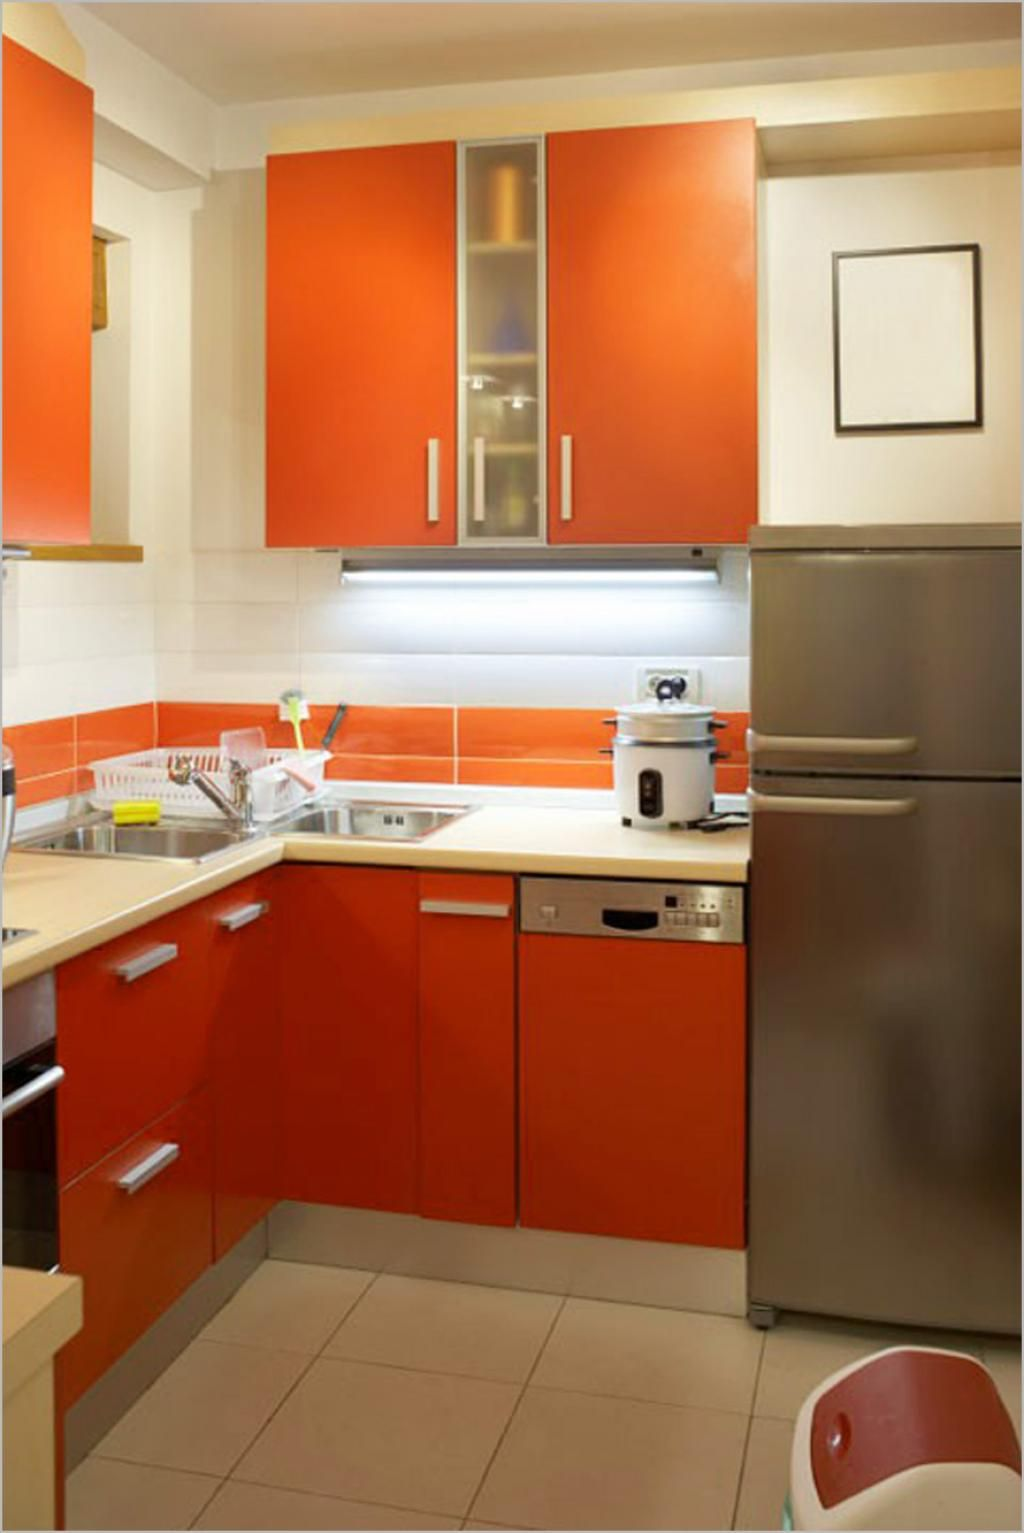 50 small kitchen design ideas decorating tiny kitchens. kitchen